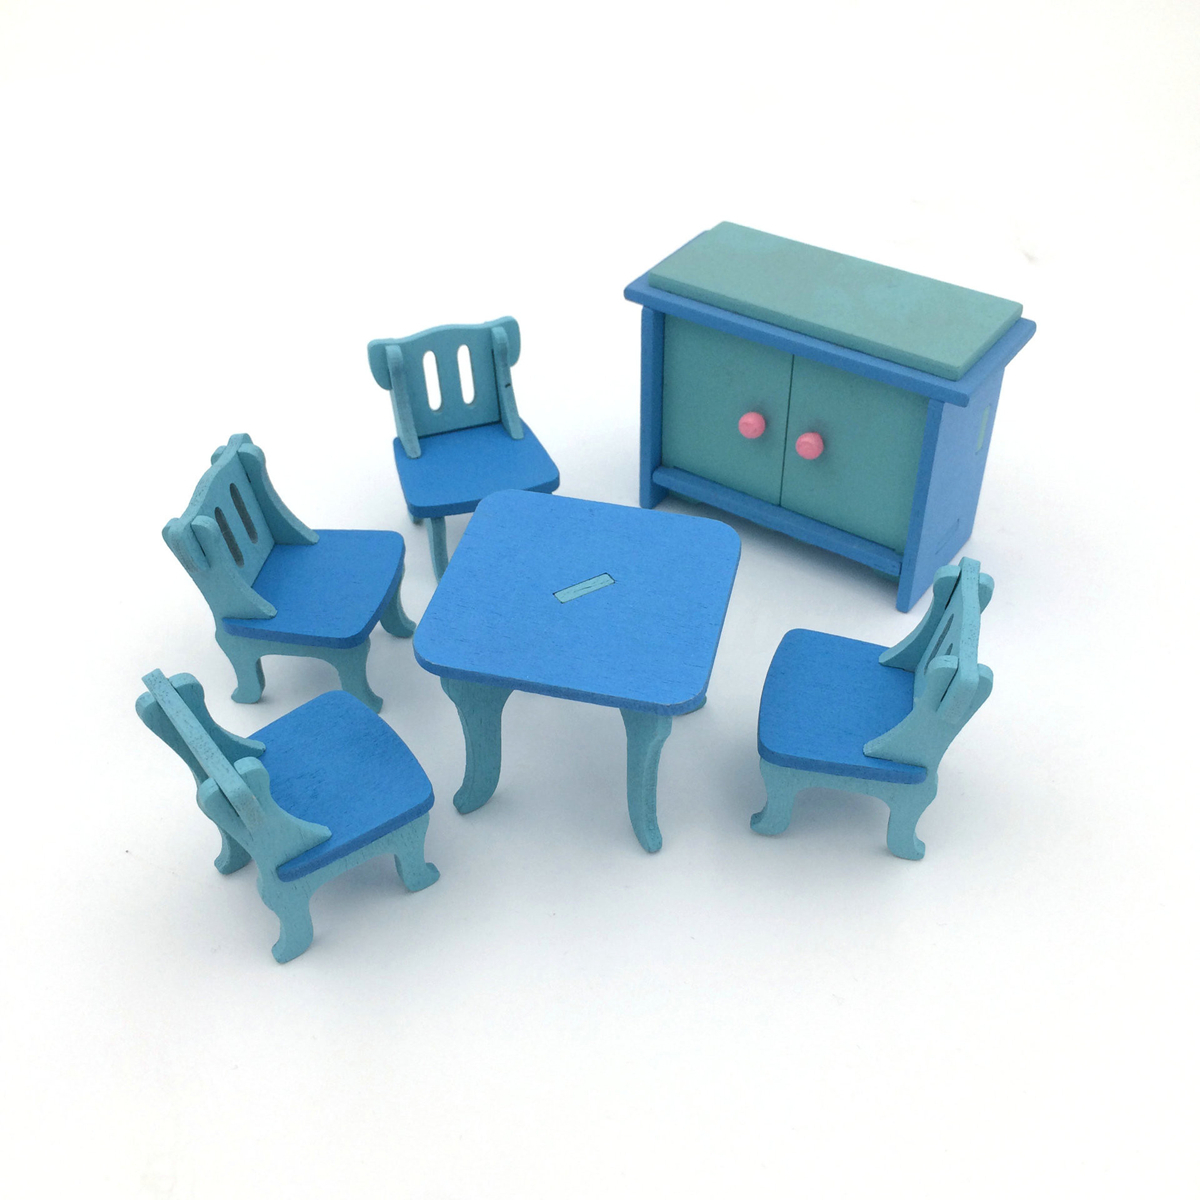 1 set/6pcs Baby Wooden Dollhouse Furniture Dolls House Miniature Child Play Toys Gifts ...